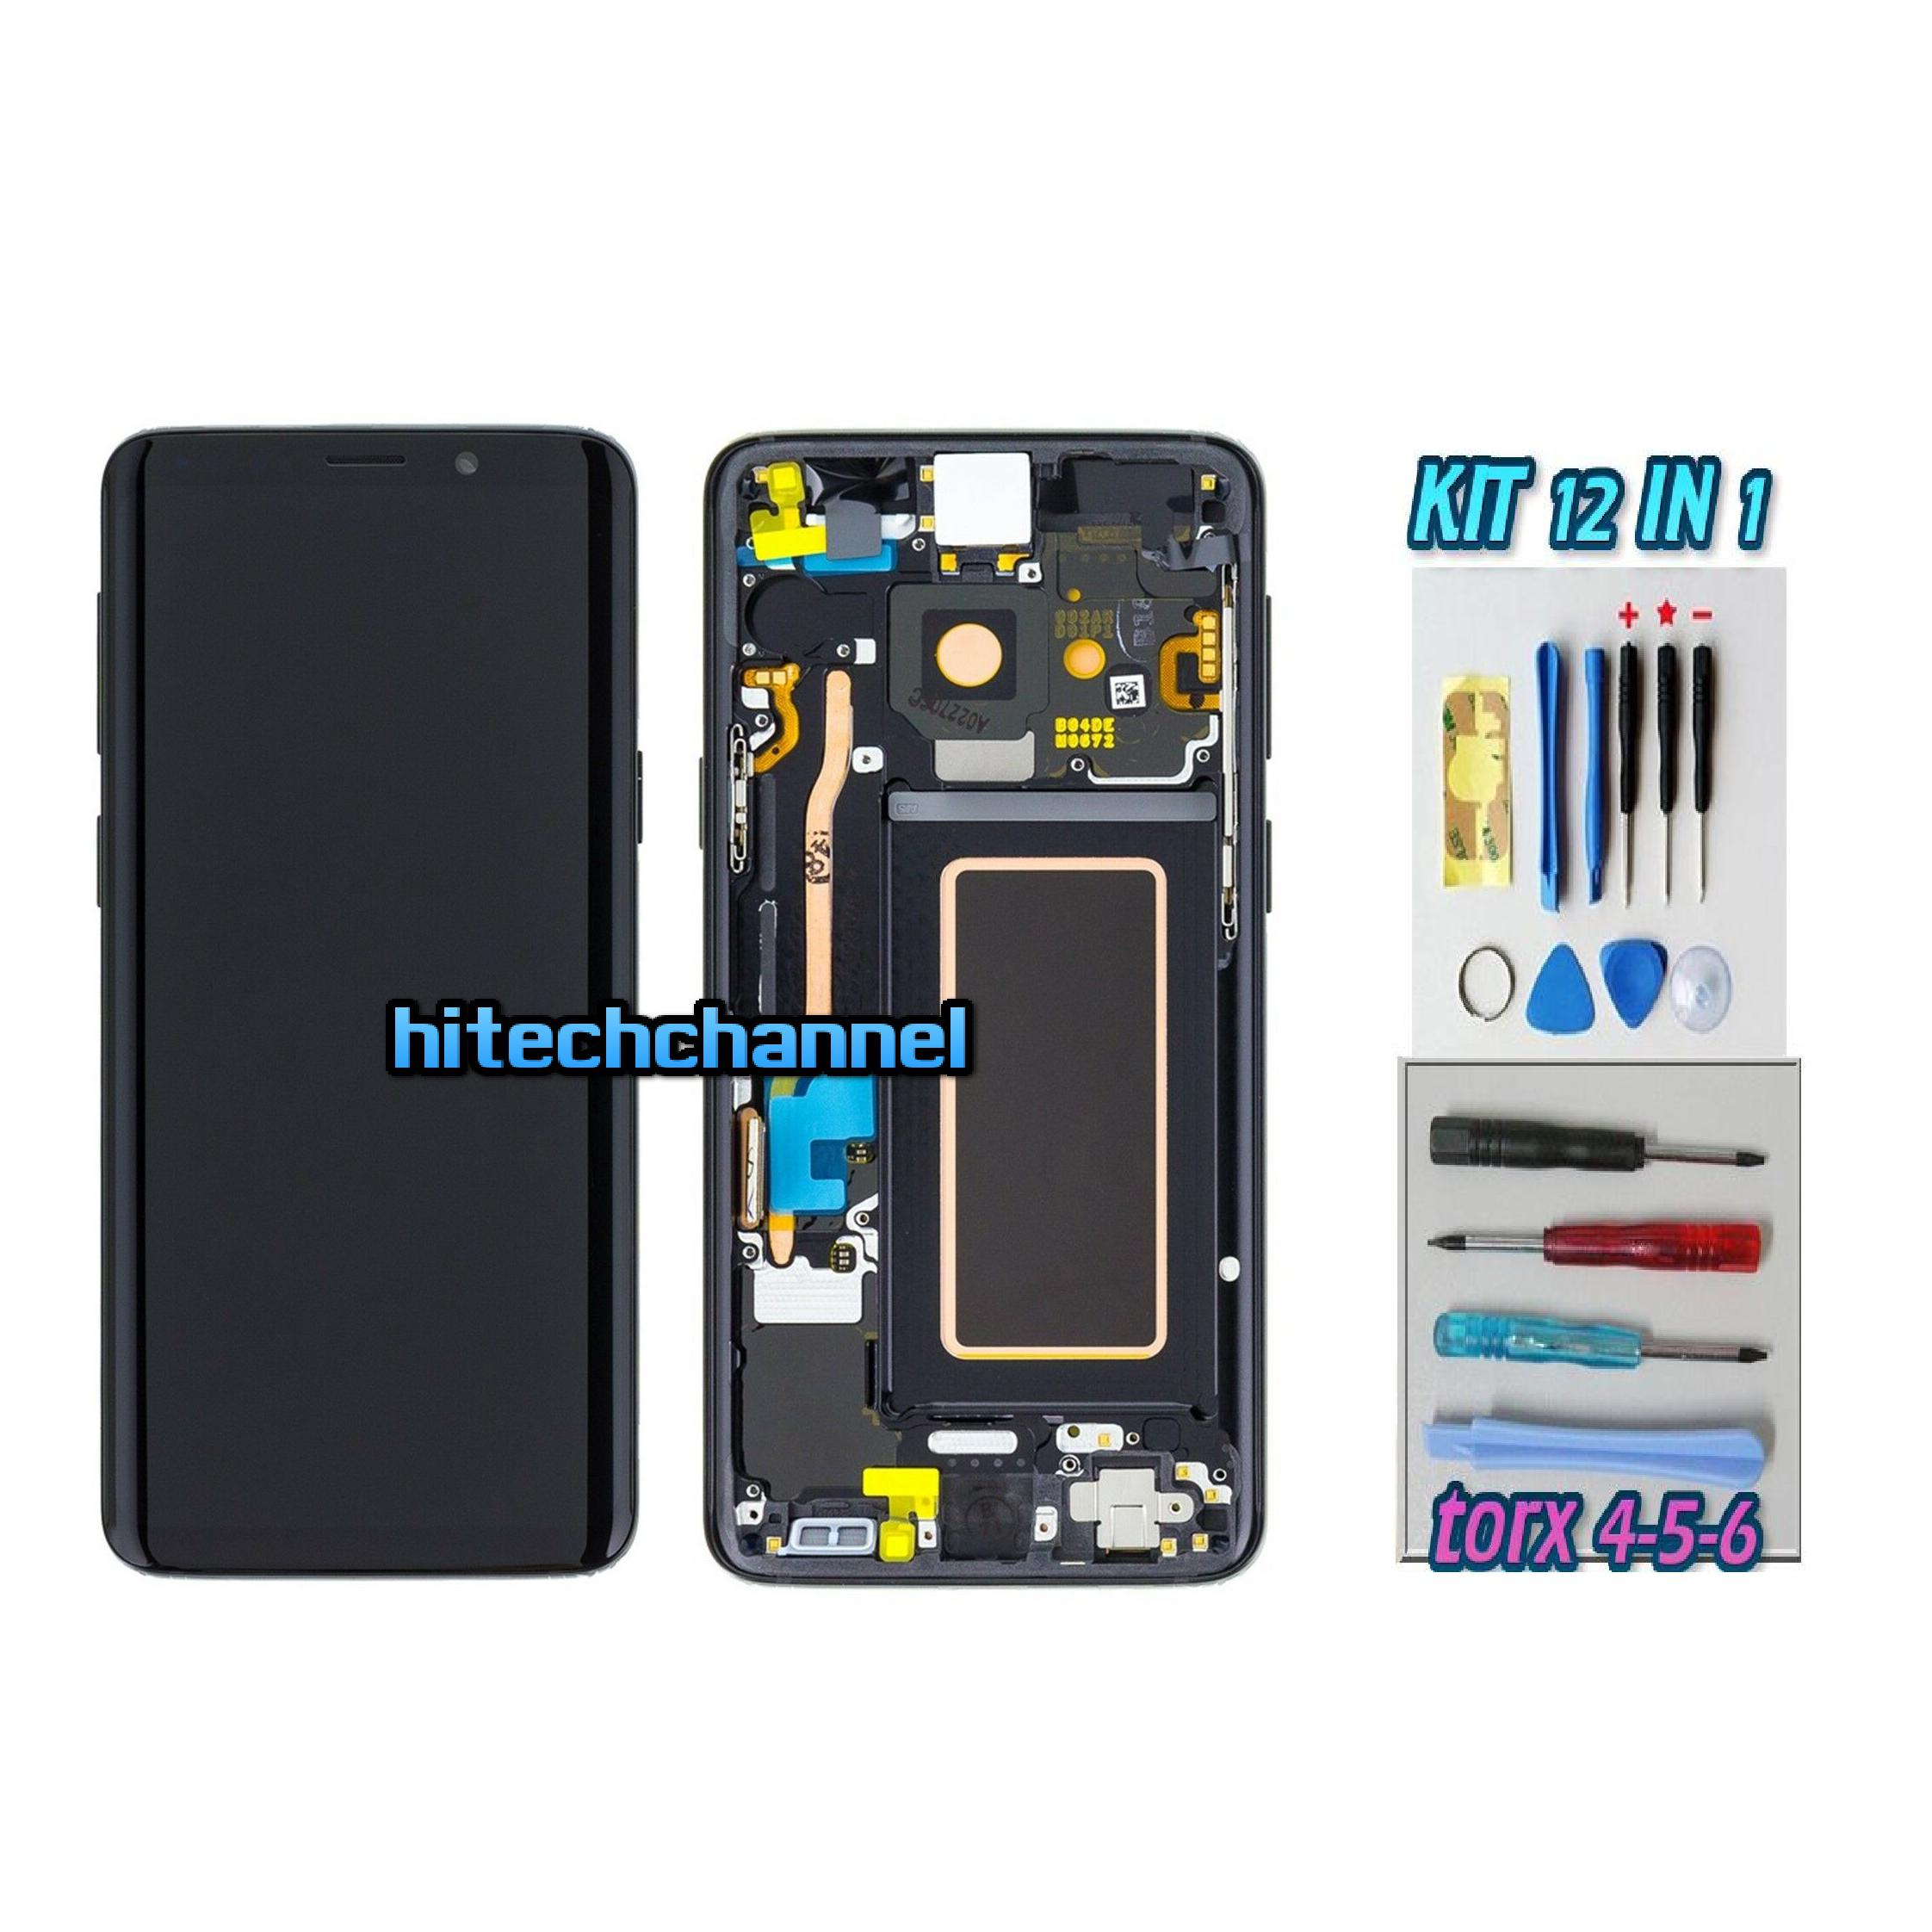 DISPLAY ORIGINALE SERVICE PACK LCD TOUCH SAMSUNG GALAXY S9 G960 NERO con kit e biadesivo